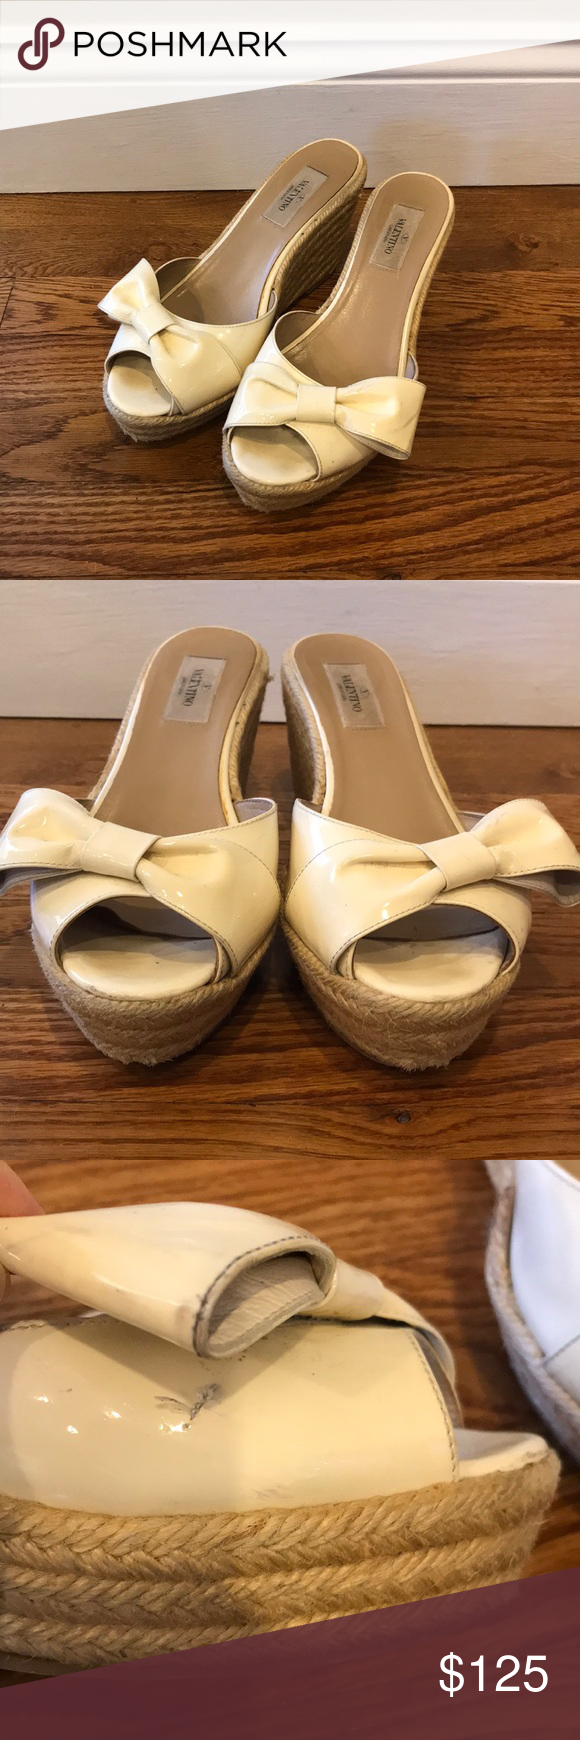 a23a7d10f93 Valentino Garavani Espadrille Bow Wedge Sandals All of my items are 100%  authentic. Size